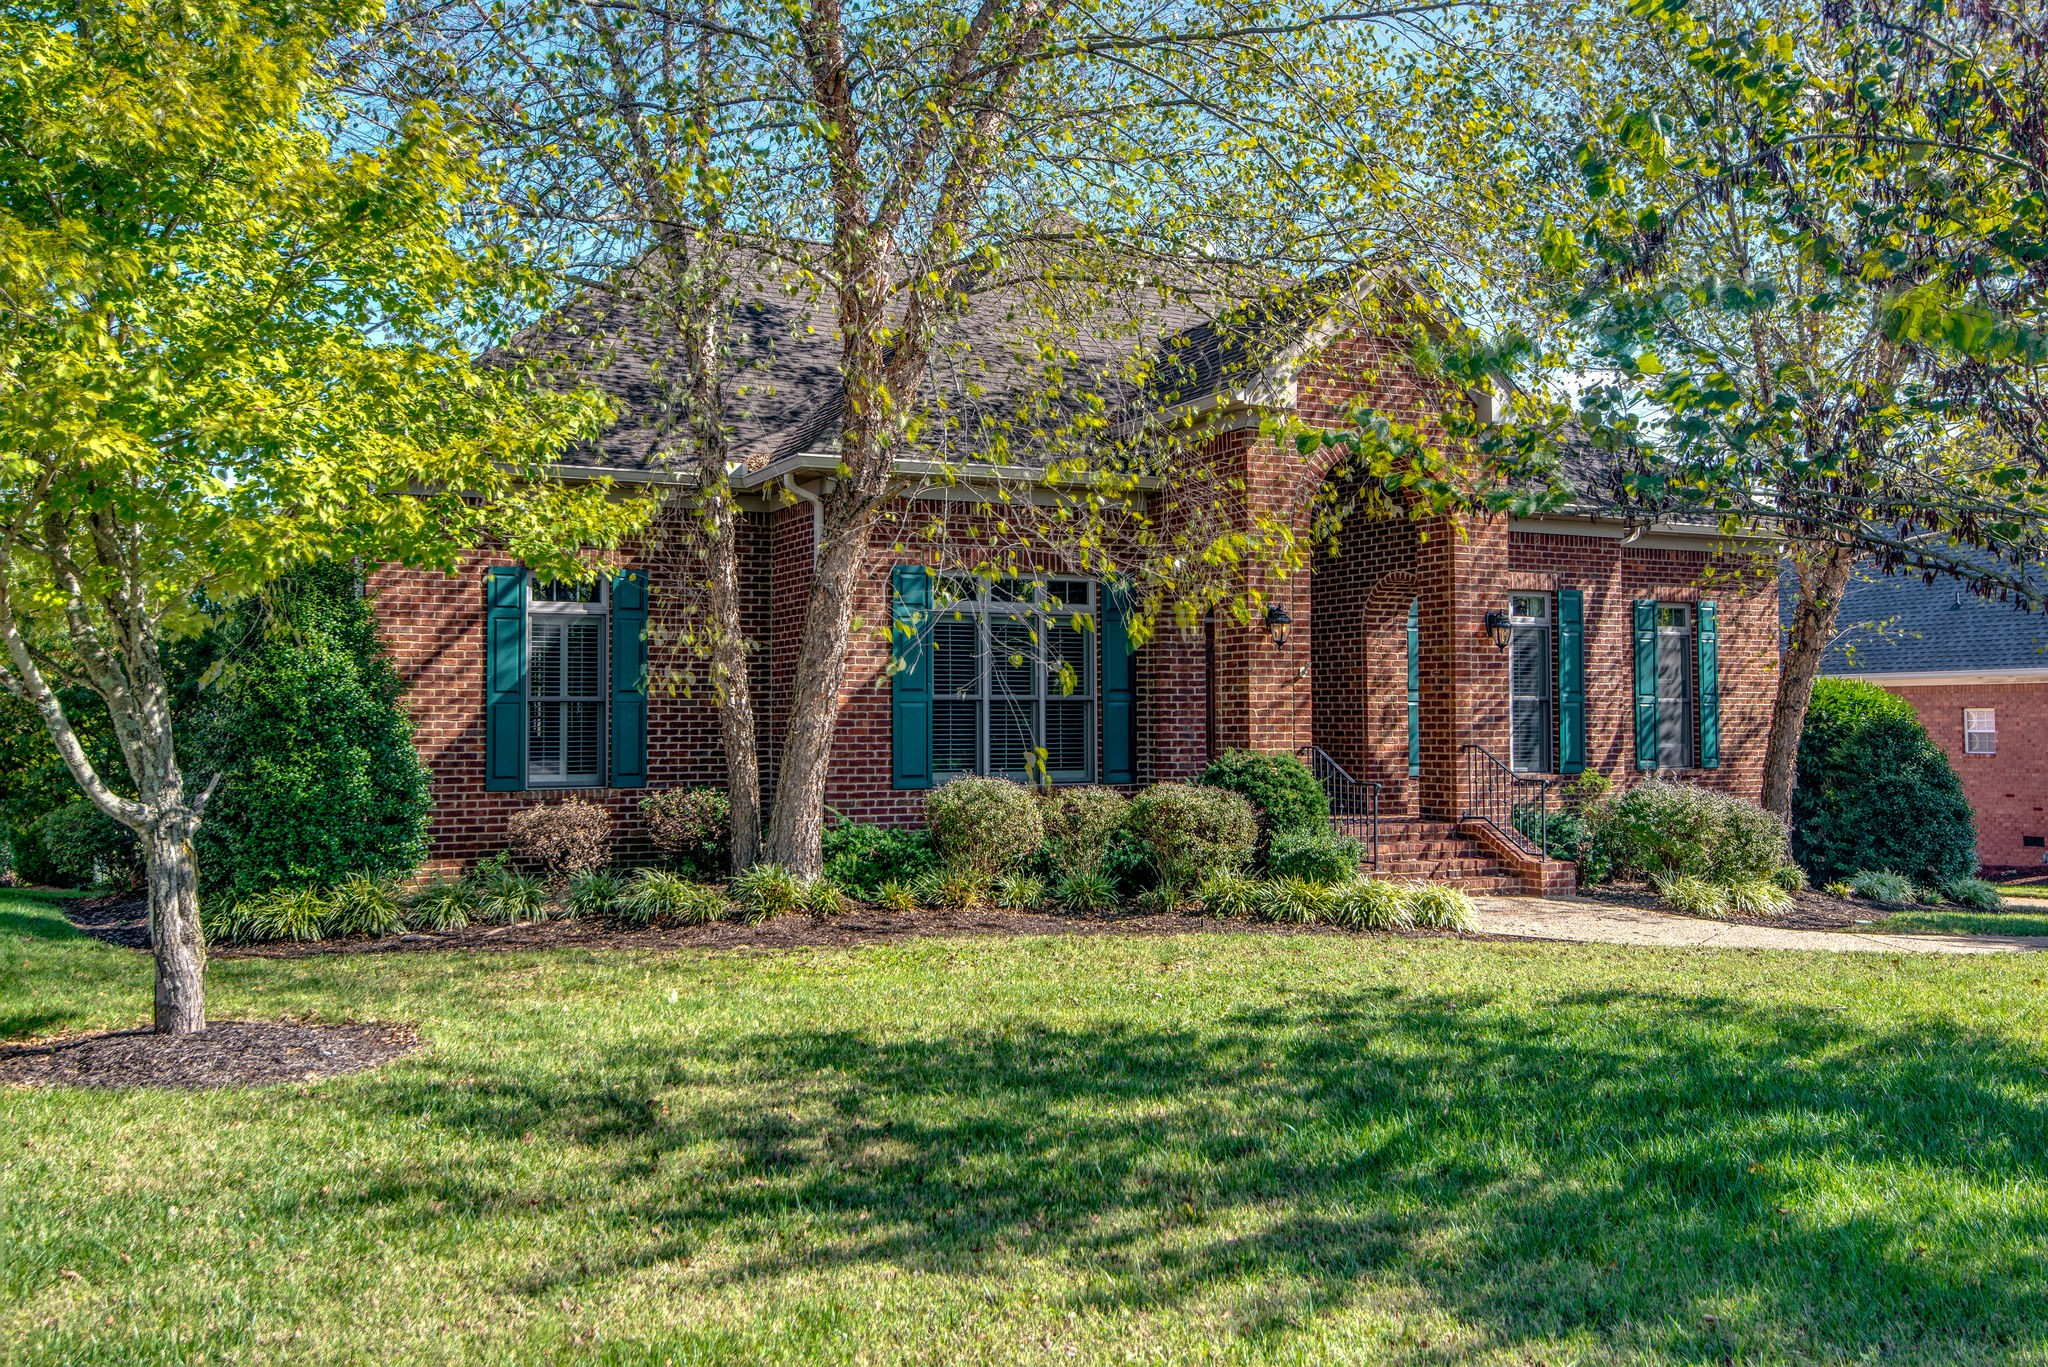 1684 Stokley Ln, Old Hickory, TN 37138 - Old Hickory, TN real estate listing